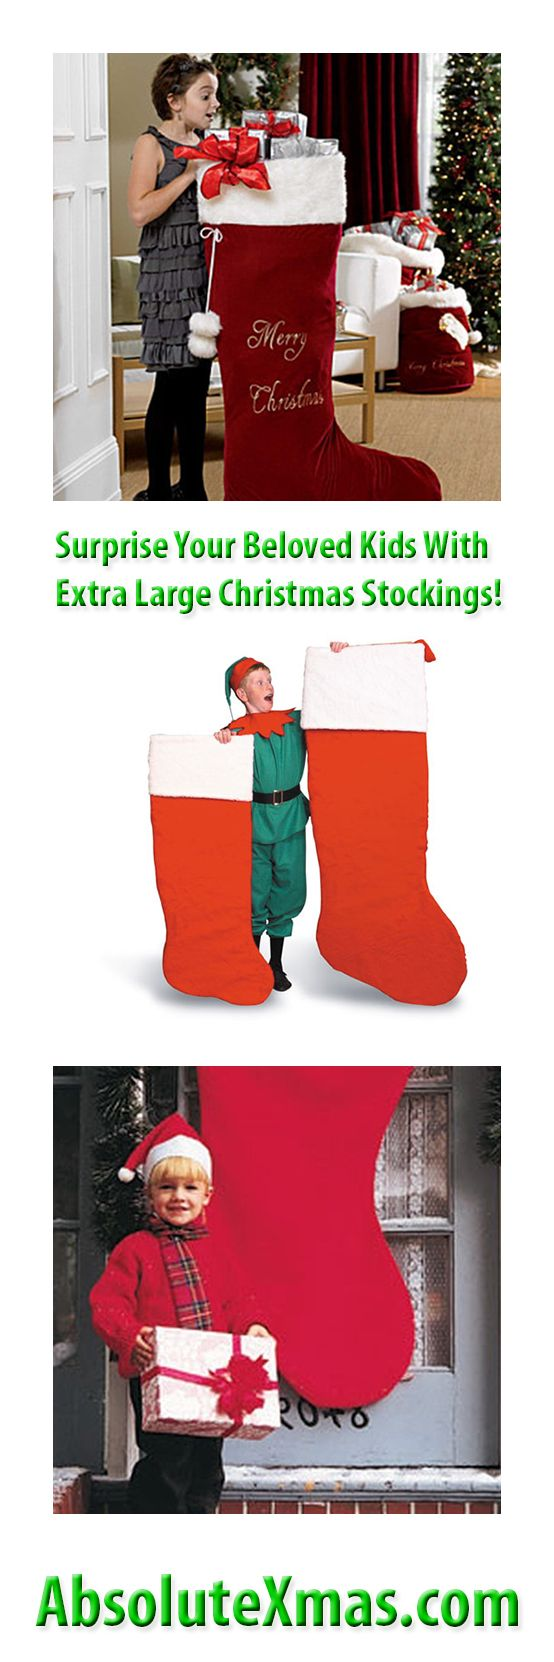 23 best extra large christmas stockings images on pinterest